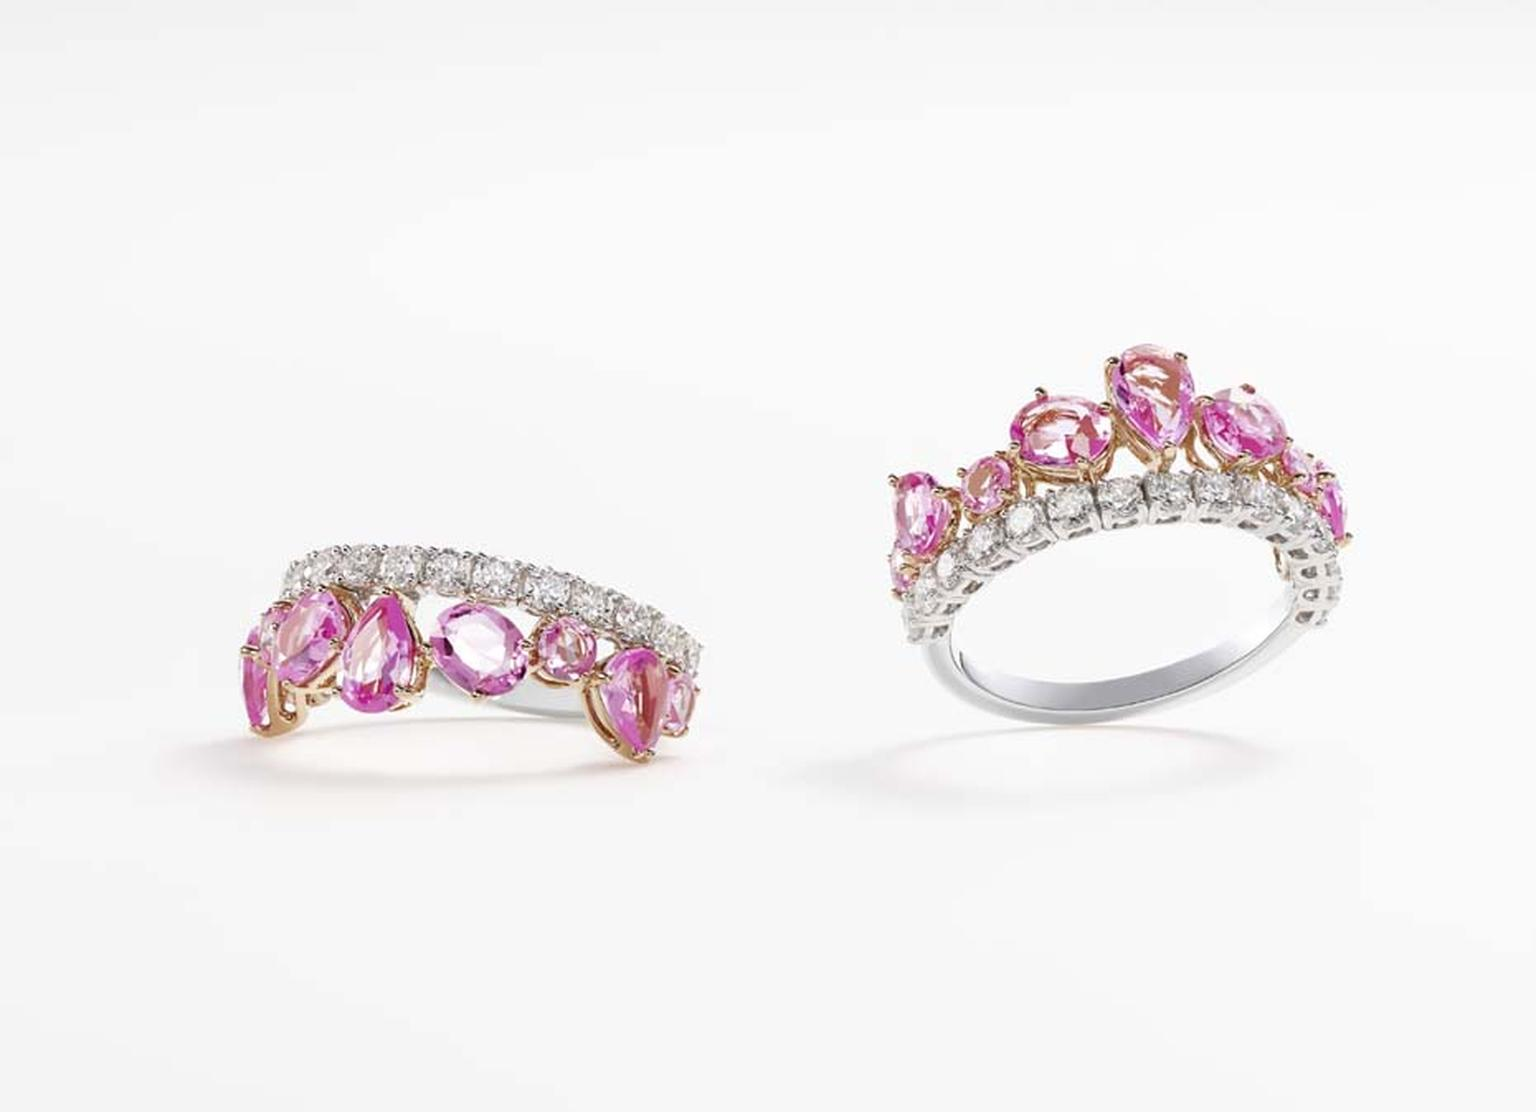 These pink sapphire rings with diamonds by William & Son can be worn either on their own or as a pair, stacked side by side on the finger.